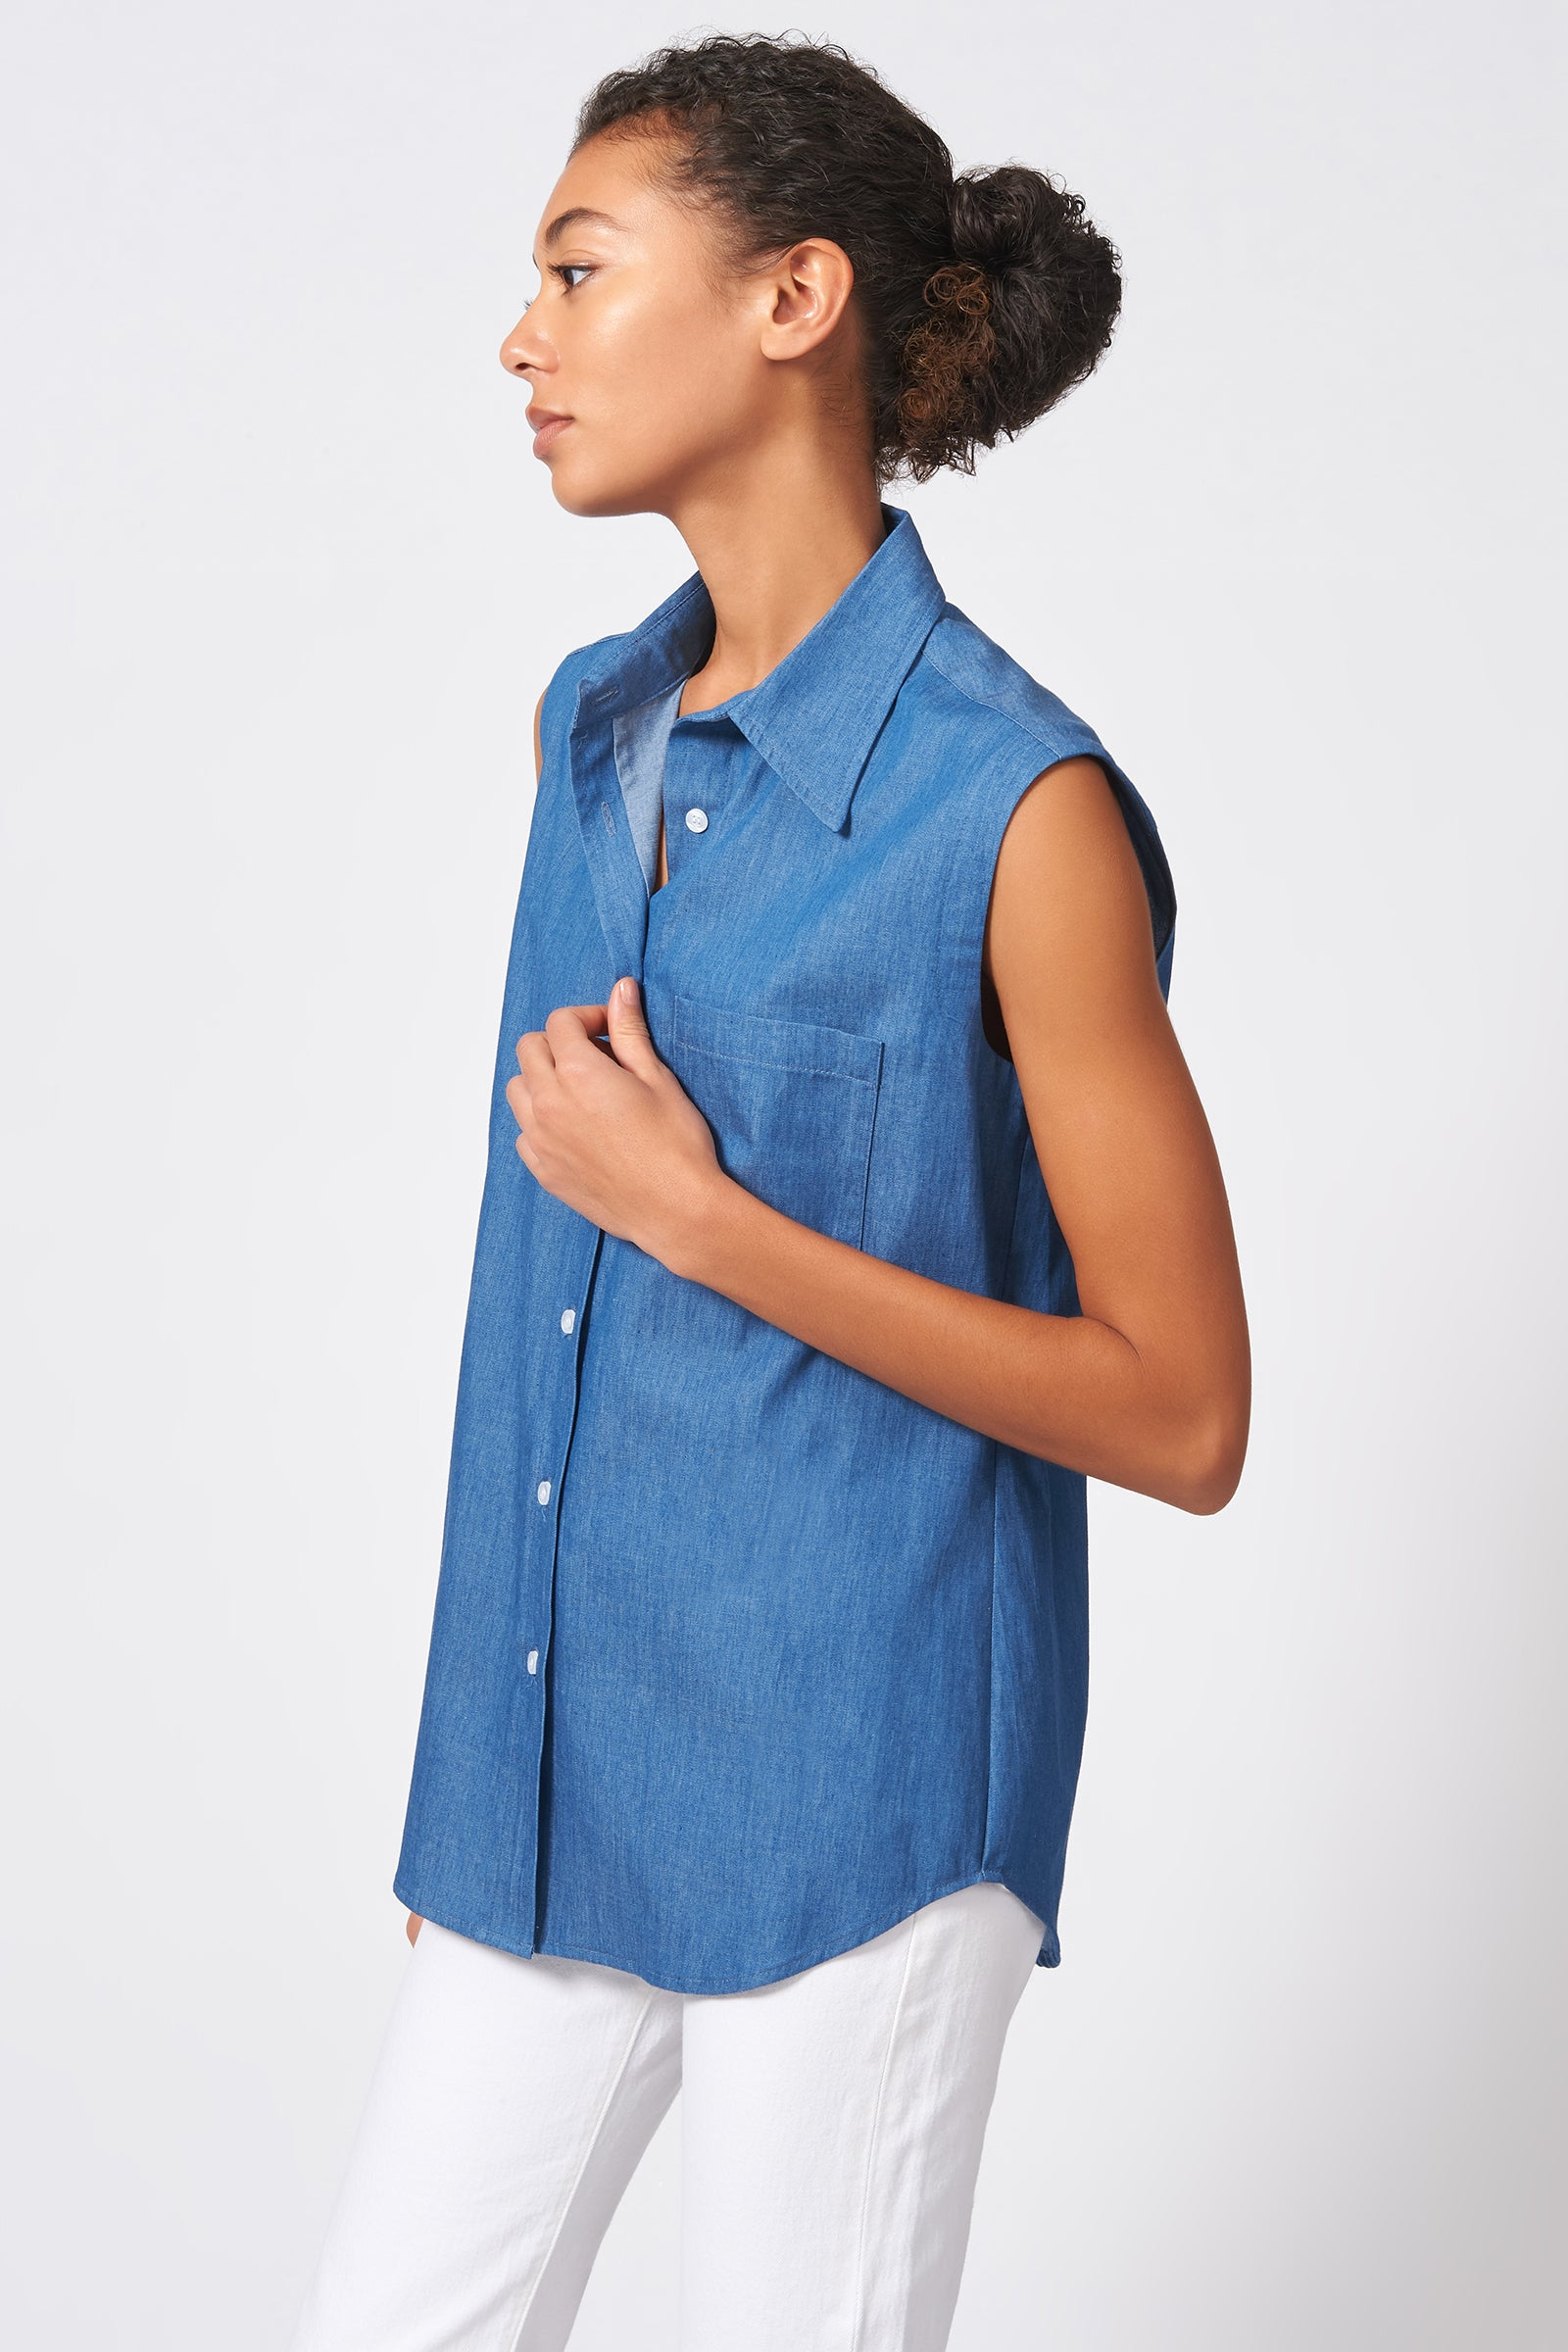 Kal Rieman Sleeveless Collared Shirt in Light Indigo on Model Side View